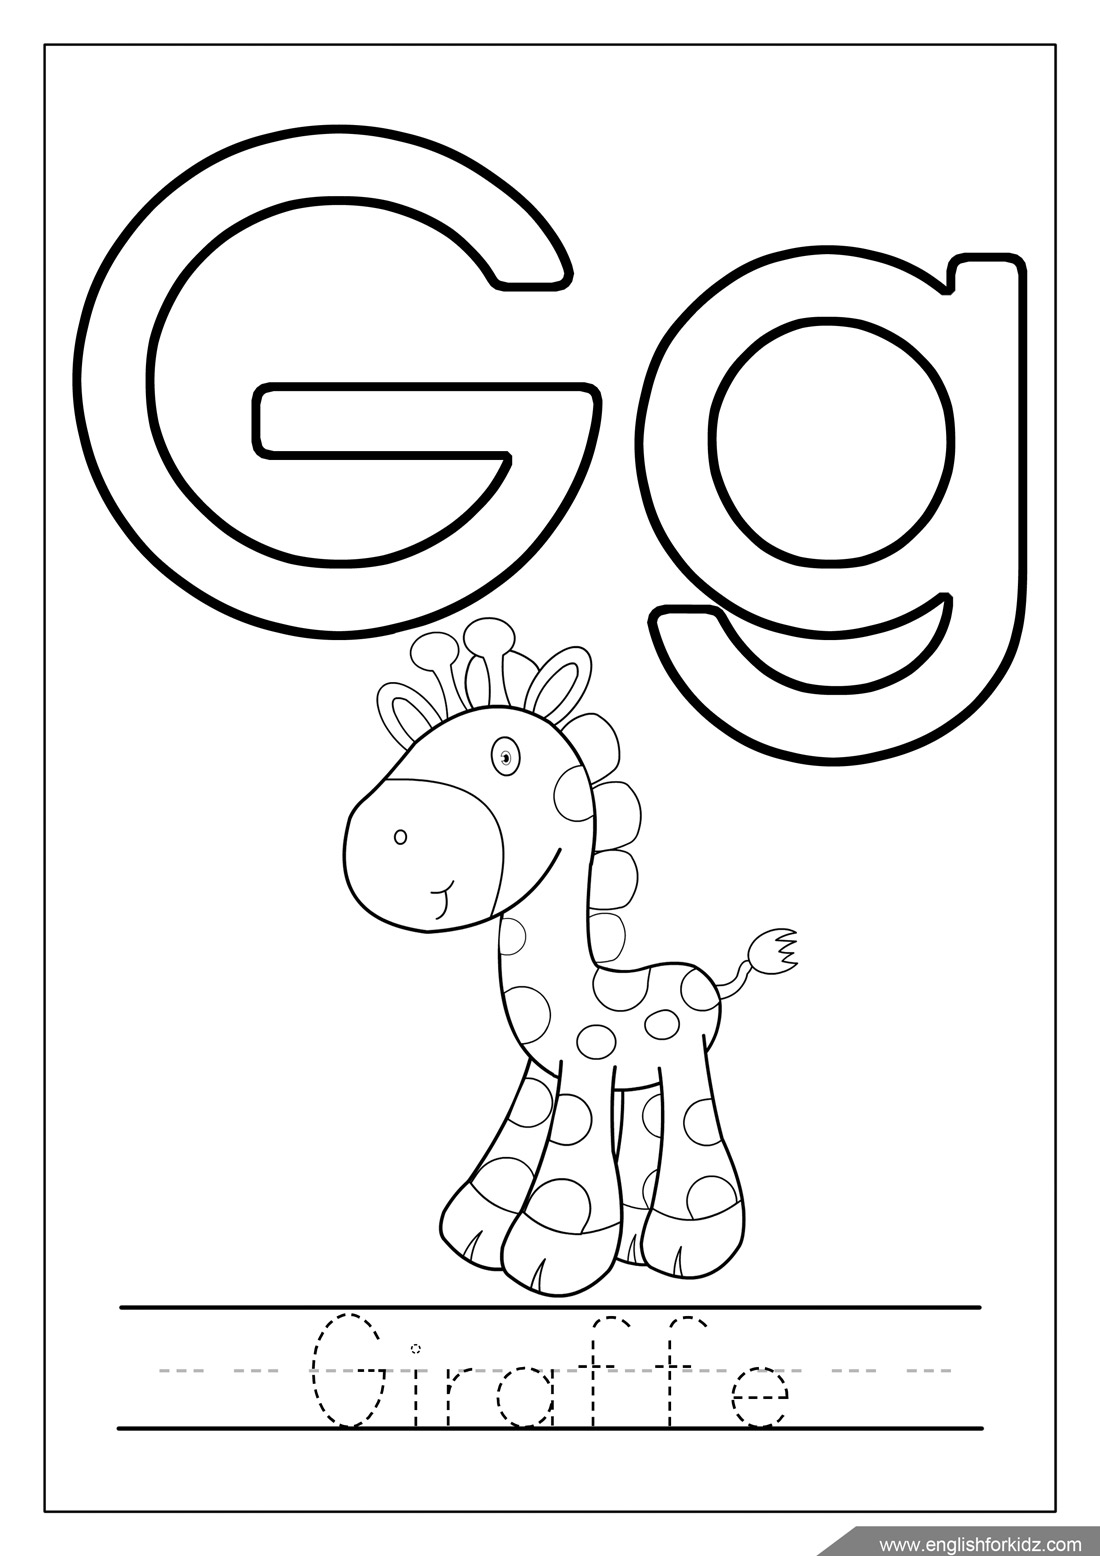 letter g coloring pages printable letter g coloring pages to download and print for free g printable coloring letter pages